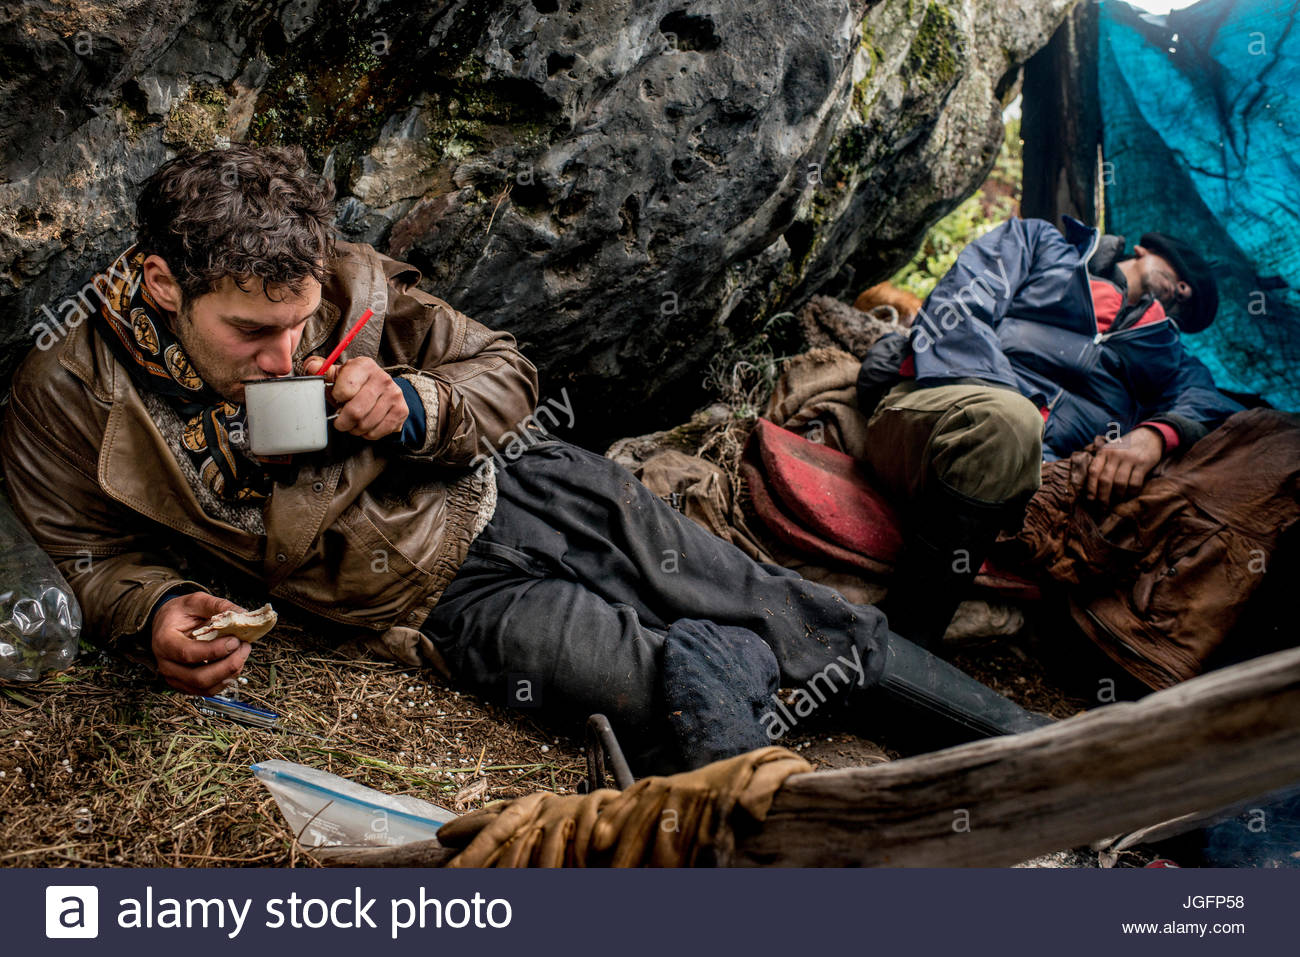 Bagualeros, cowboys who capture feral livestock, drink mate tea while camping on a ranch to ranch trip. - Stock Image